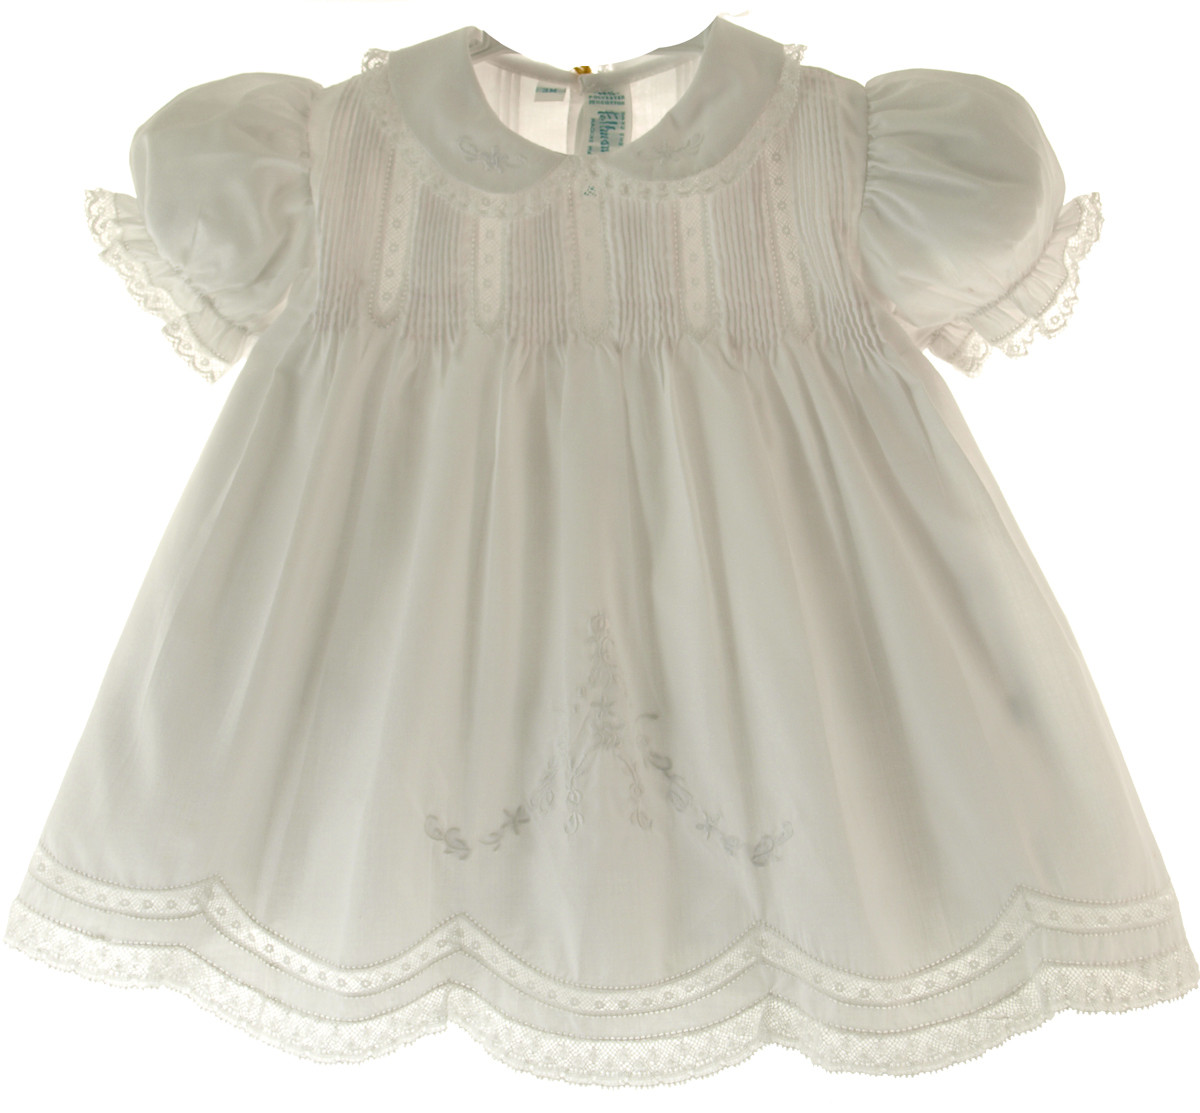 White Slip Dress For Baby Girl Feltman Brothers Vintage Clothes